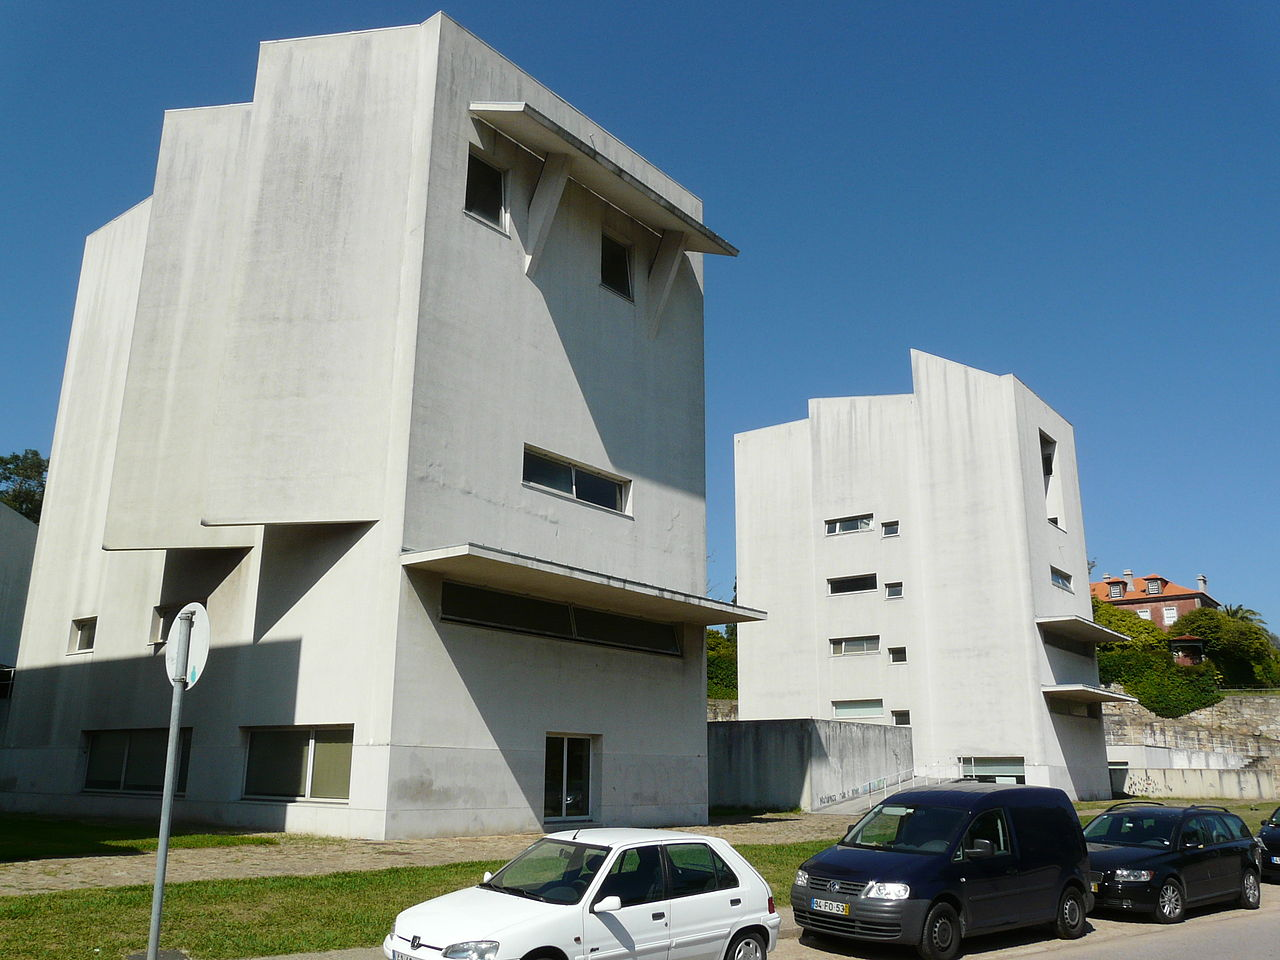 On the campus of Porto's Faculty of Architecture